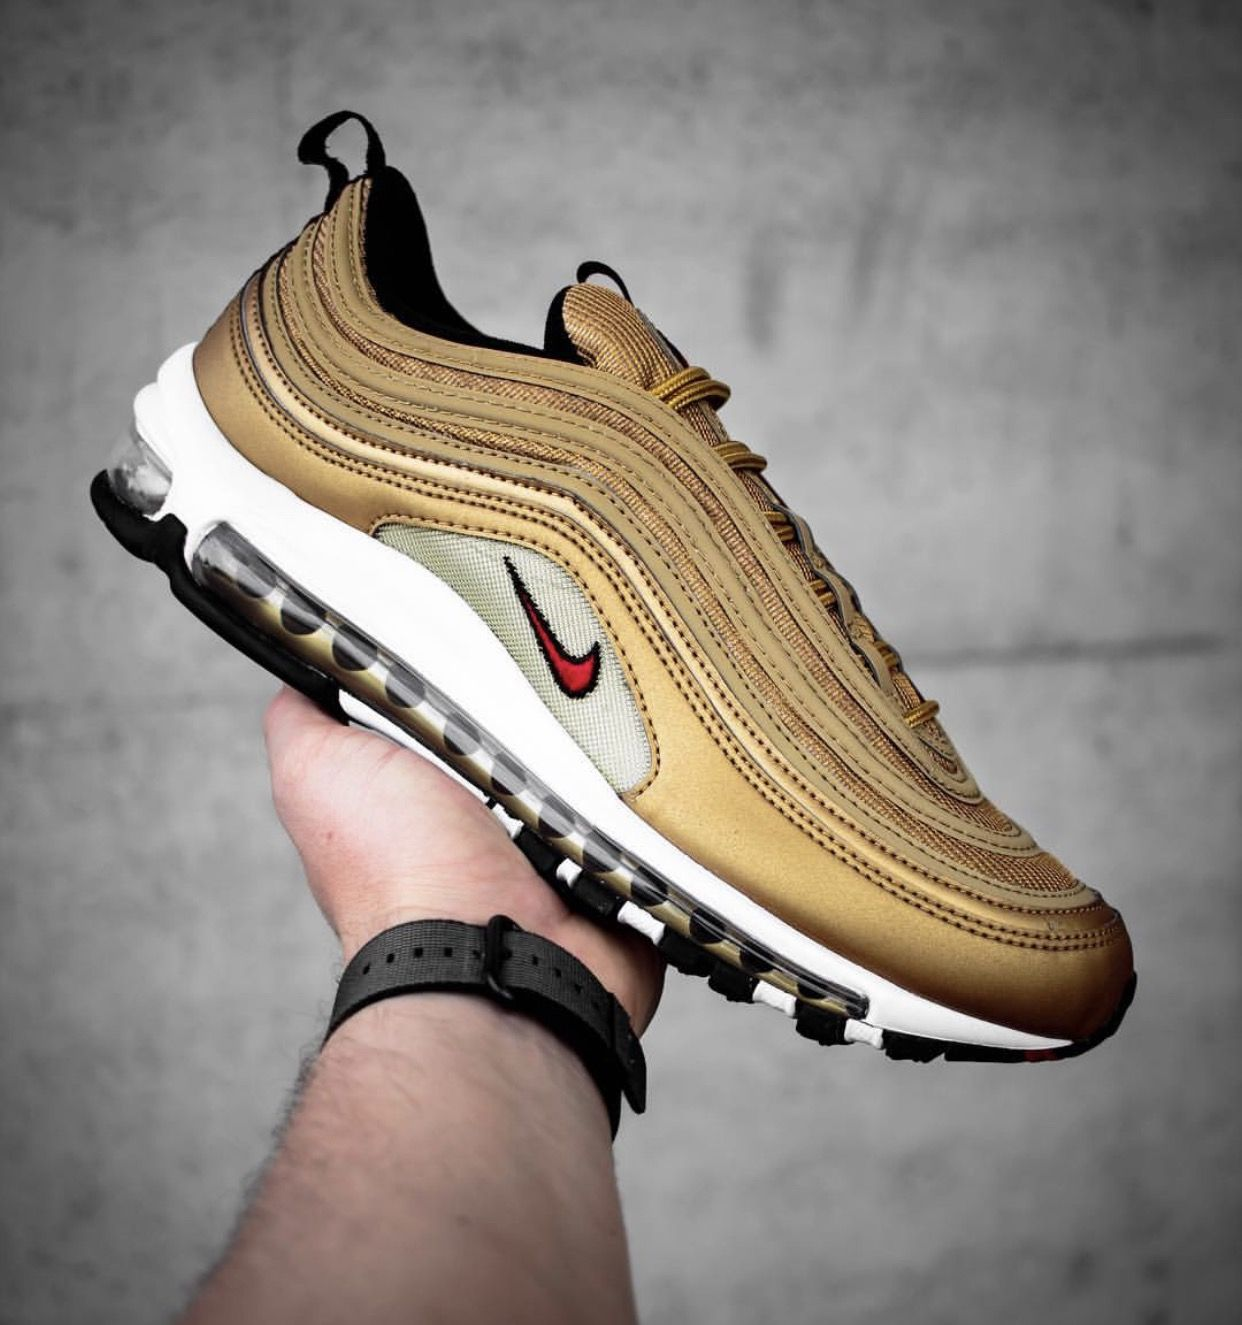 The Cheap Nike Air Max 97